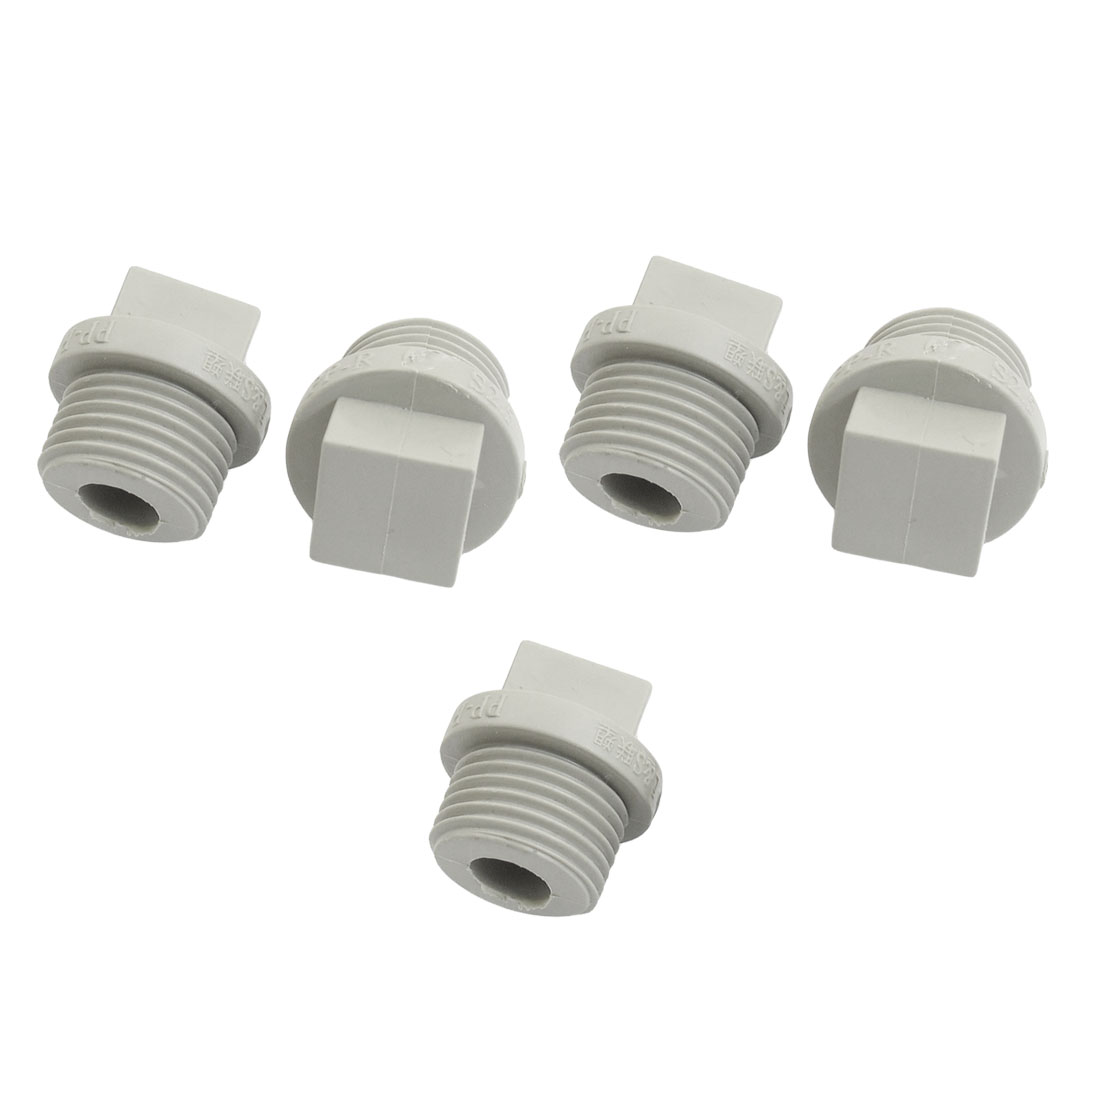 5 Pcs 21mm Male Thread Gray PPR Pipe End Caps Plug